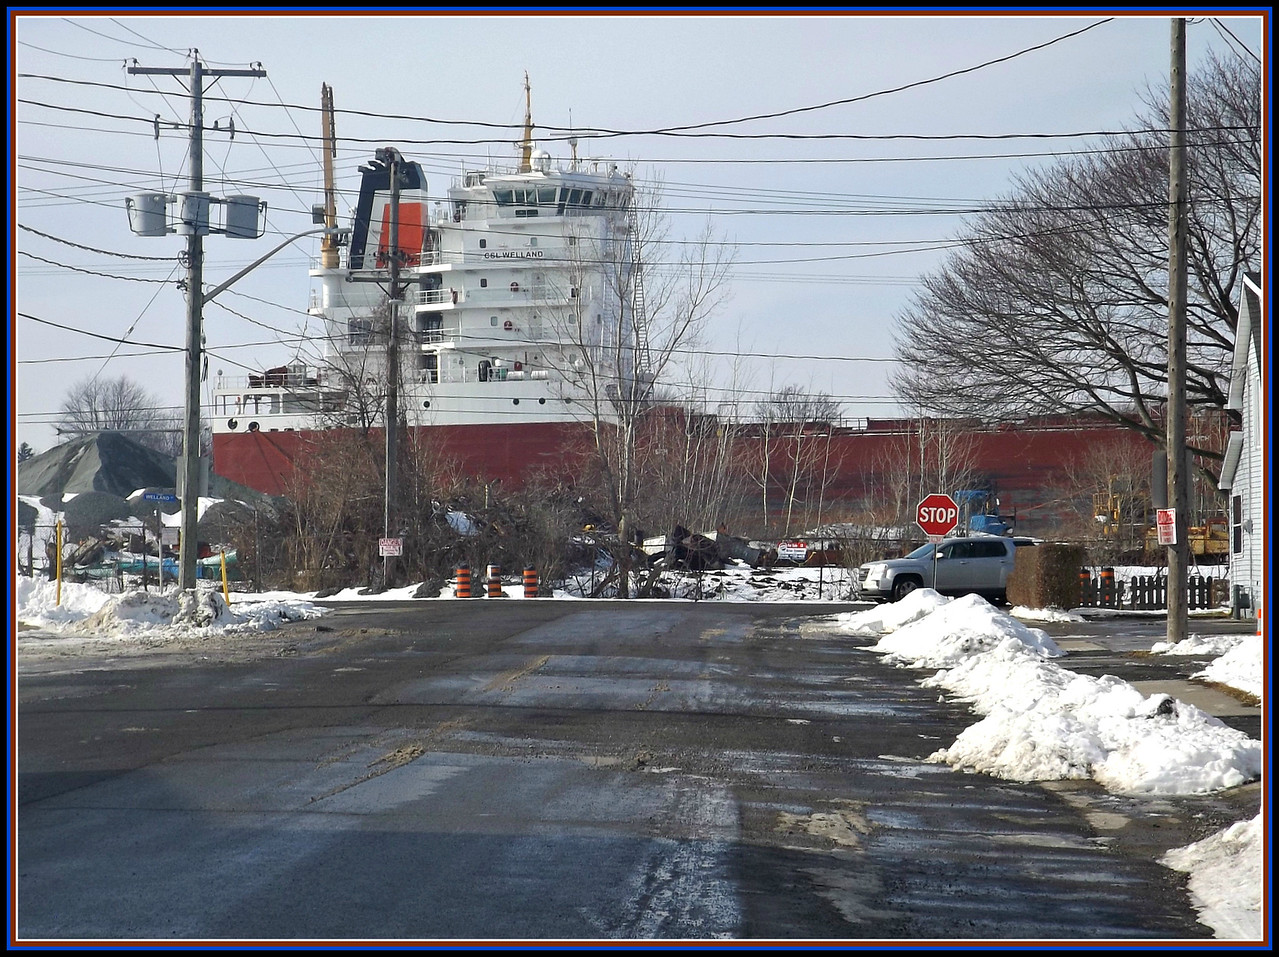 We drove to Port Colborne on the Welland Canal today. Beautiful sunshine. This is a Great Lakes freighter owned by paul martin shipping company! 2/2/2018